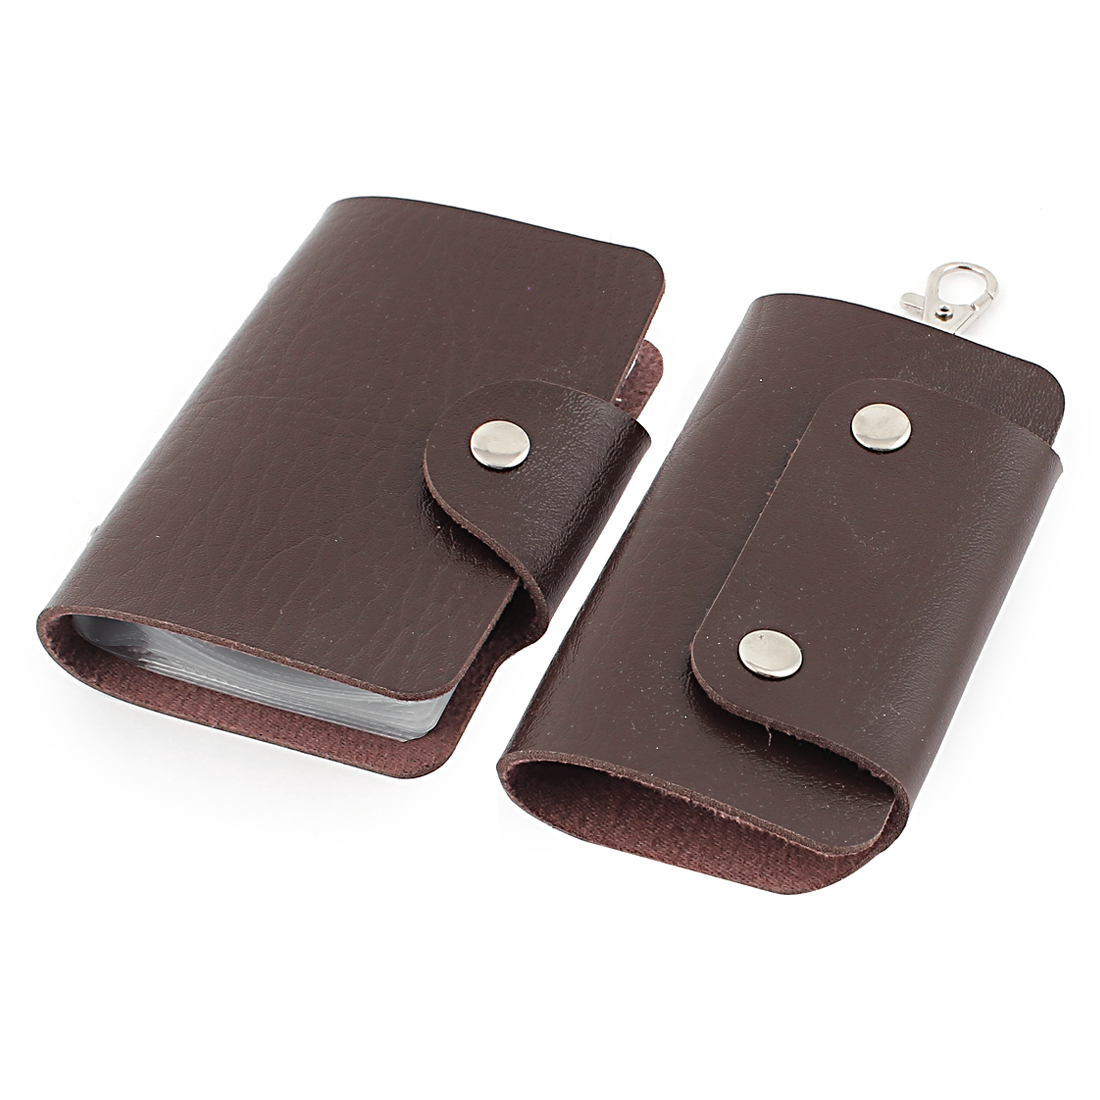 2 Pcs Brown Rectangular Faux Leather Cover Car Auto Key Chain Ring Credit VIP Business Card Holder Wallet Case Organizer